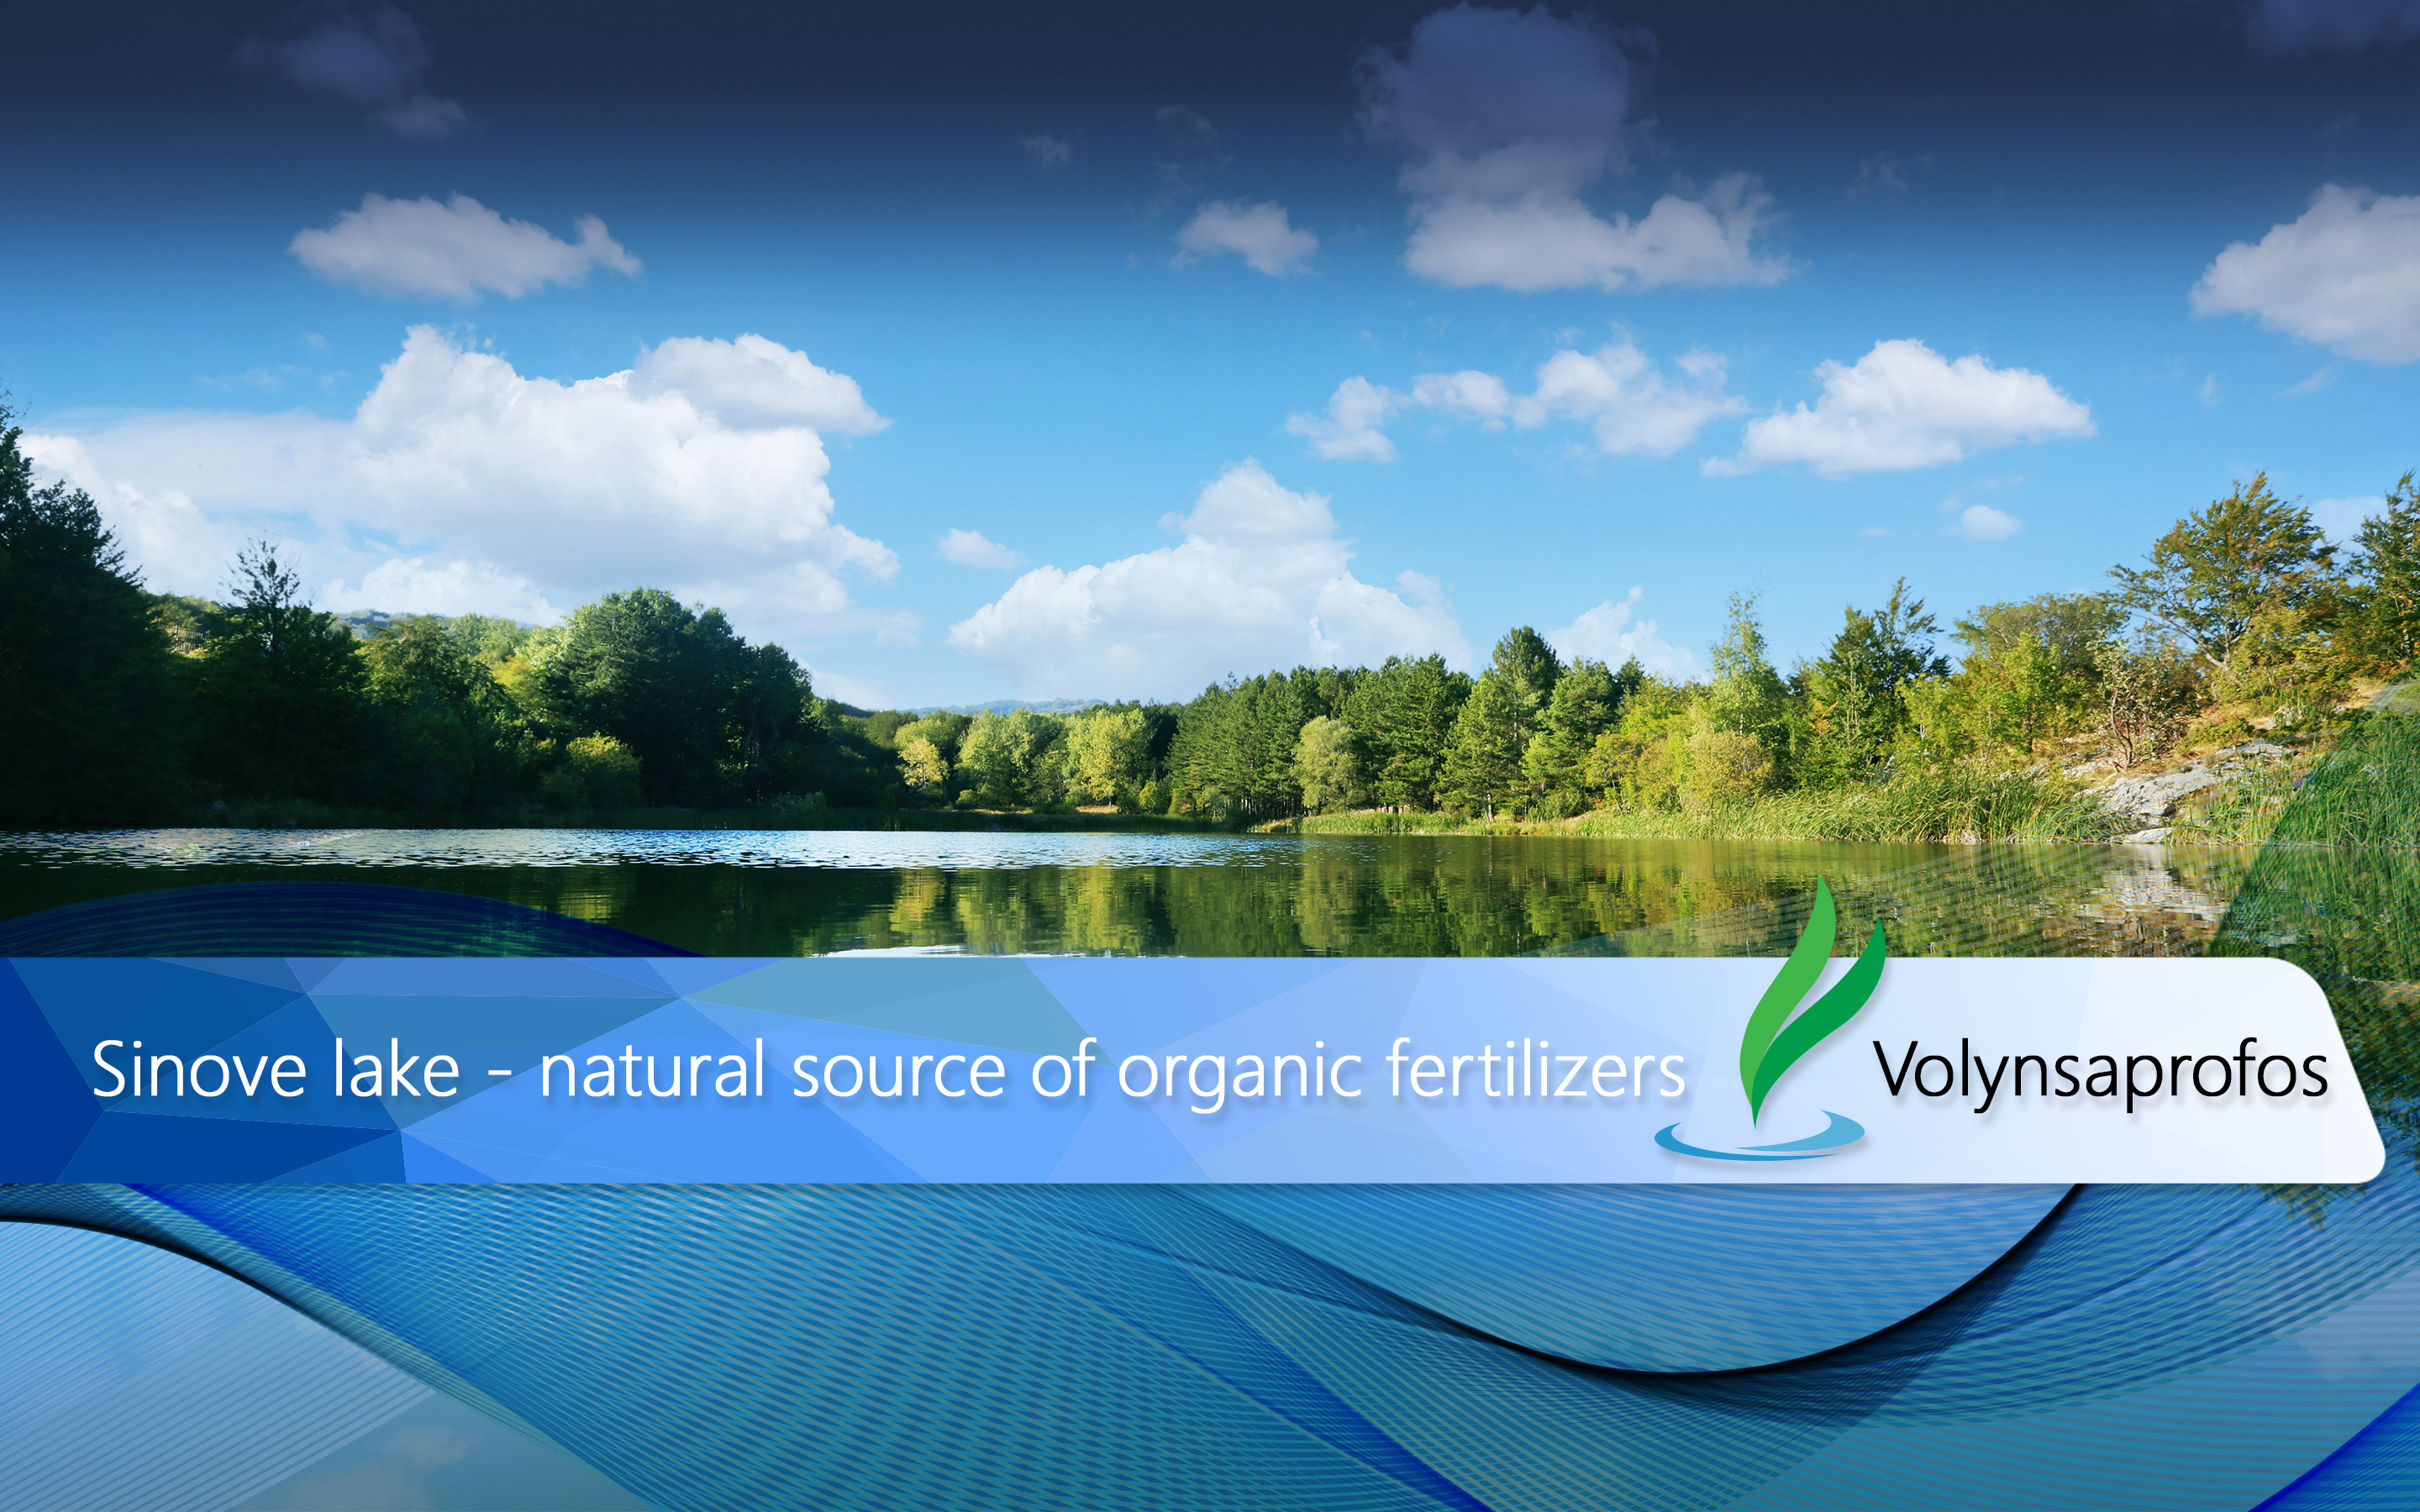 3-Sinove-lake-natural-source-of-organic-fertilizers